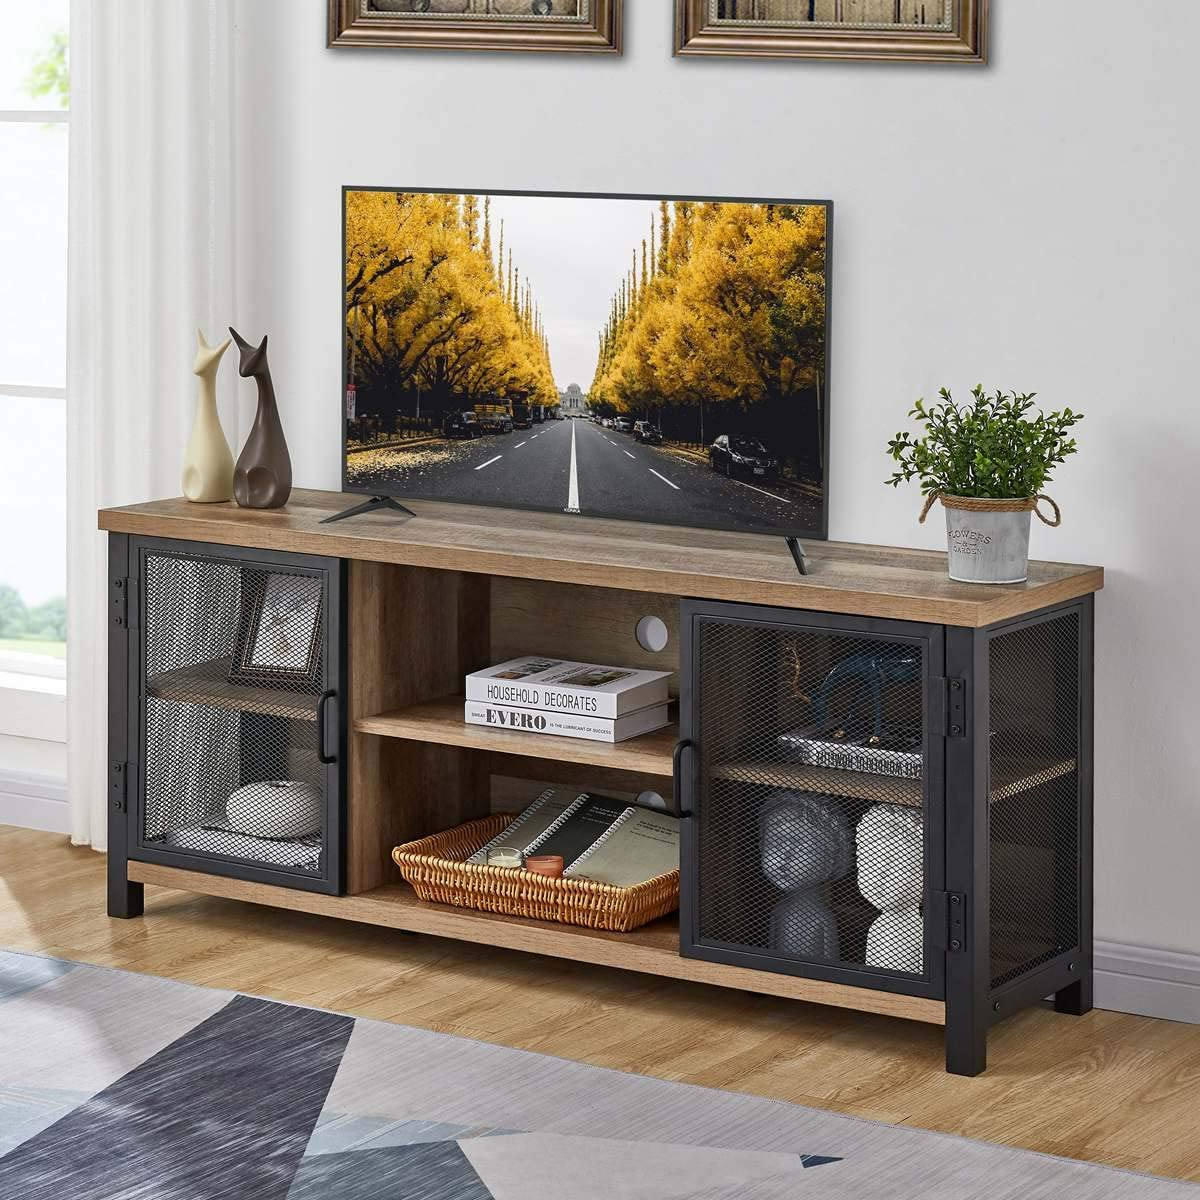 FATORRI Rustic TV Stand for TVs up to 60 Inch, Industrial Entertainment Center for 55 Inch TV, Wood TV Console and TV Cabinet for Living Room (55 Inch, Rustic Oak)